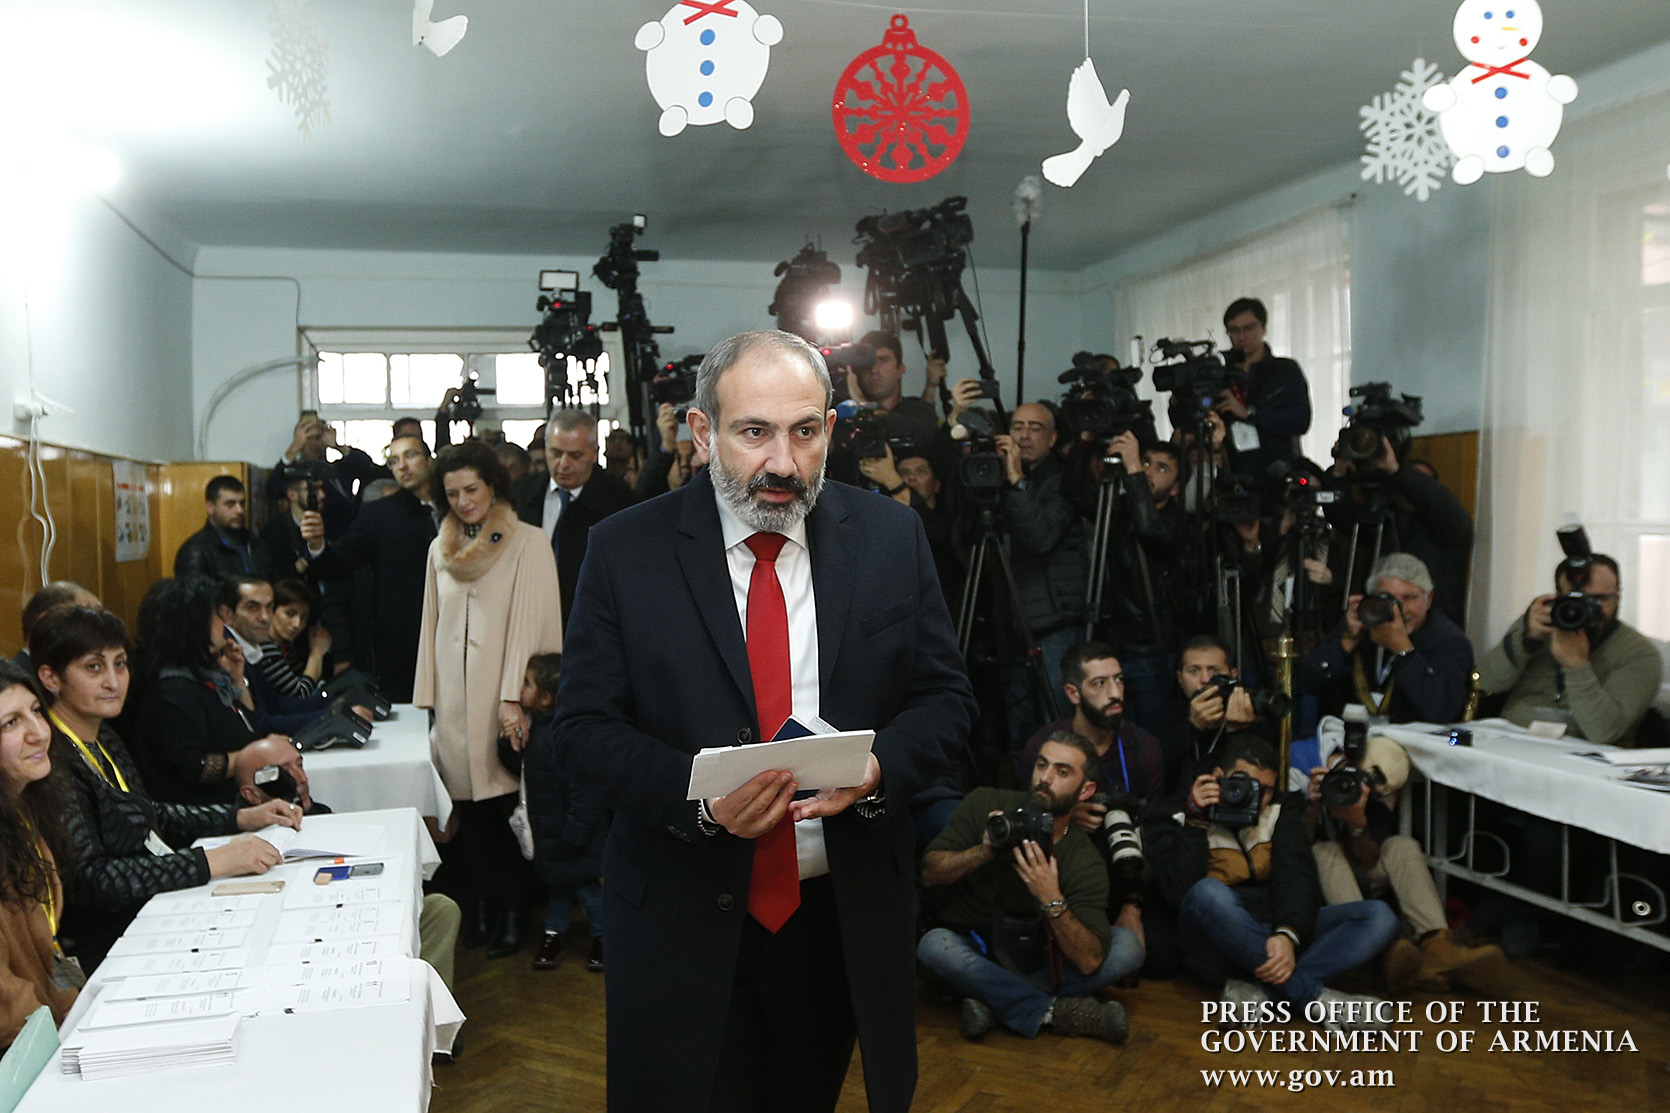 Pashinyan casting his vote